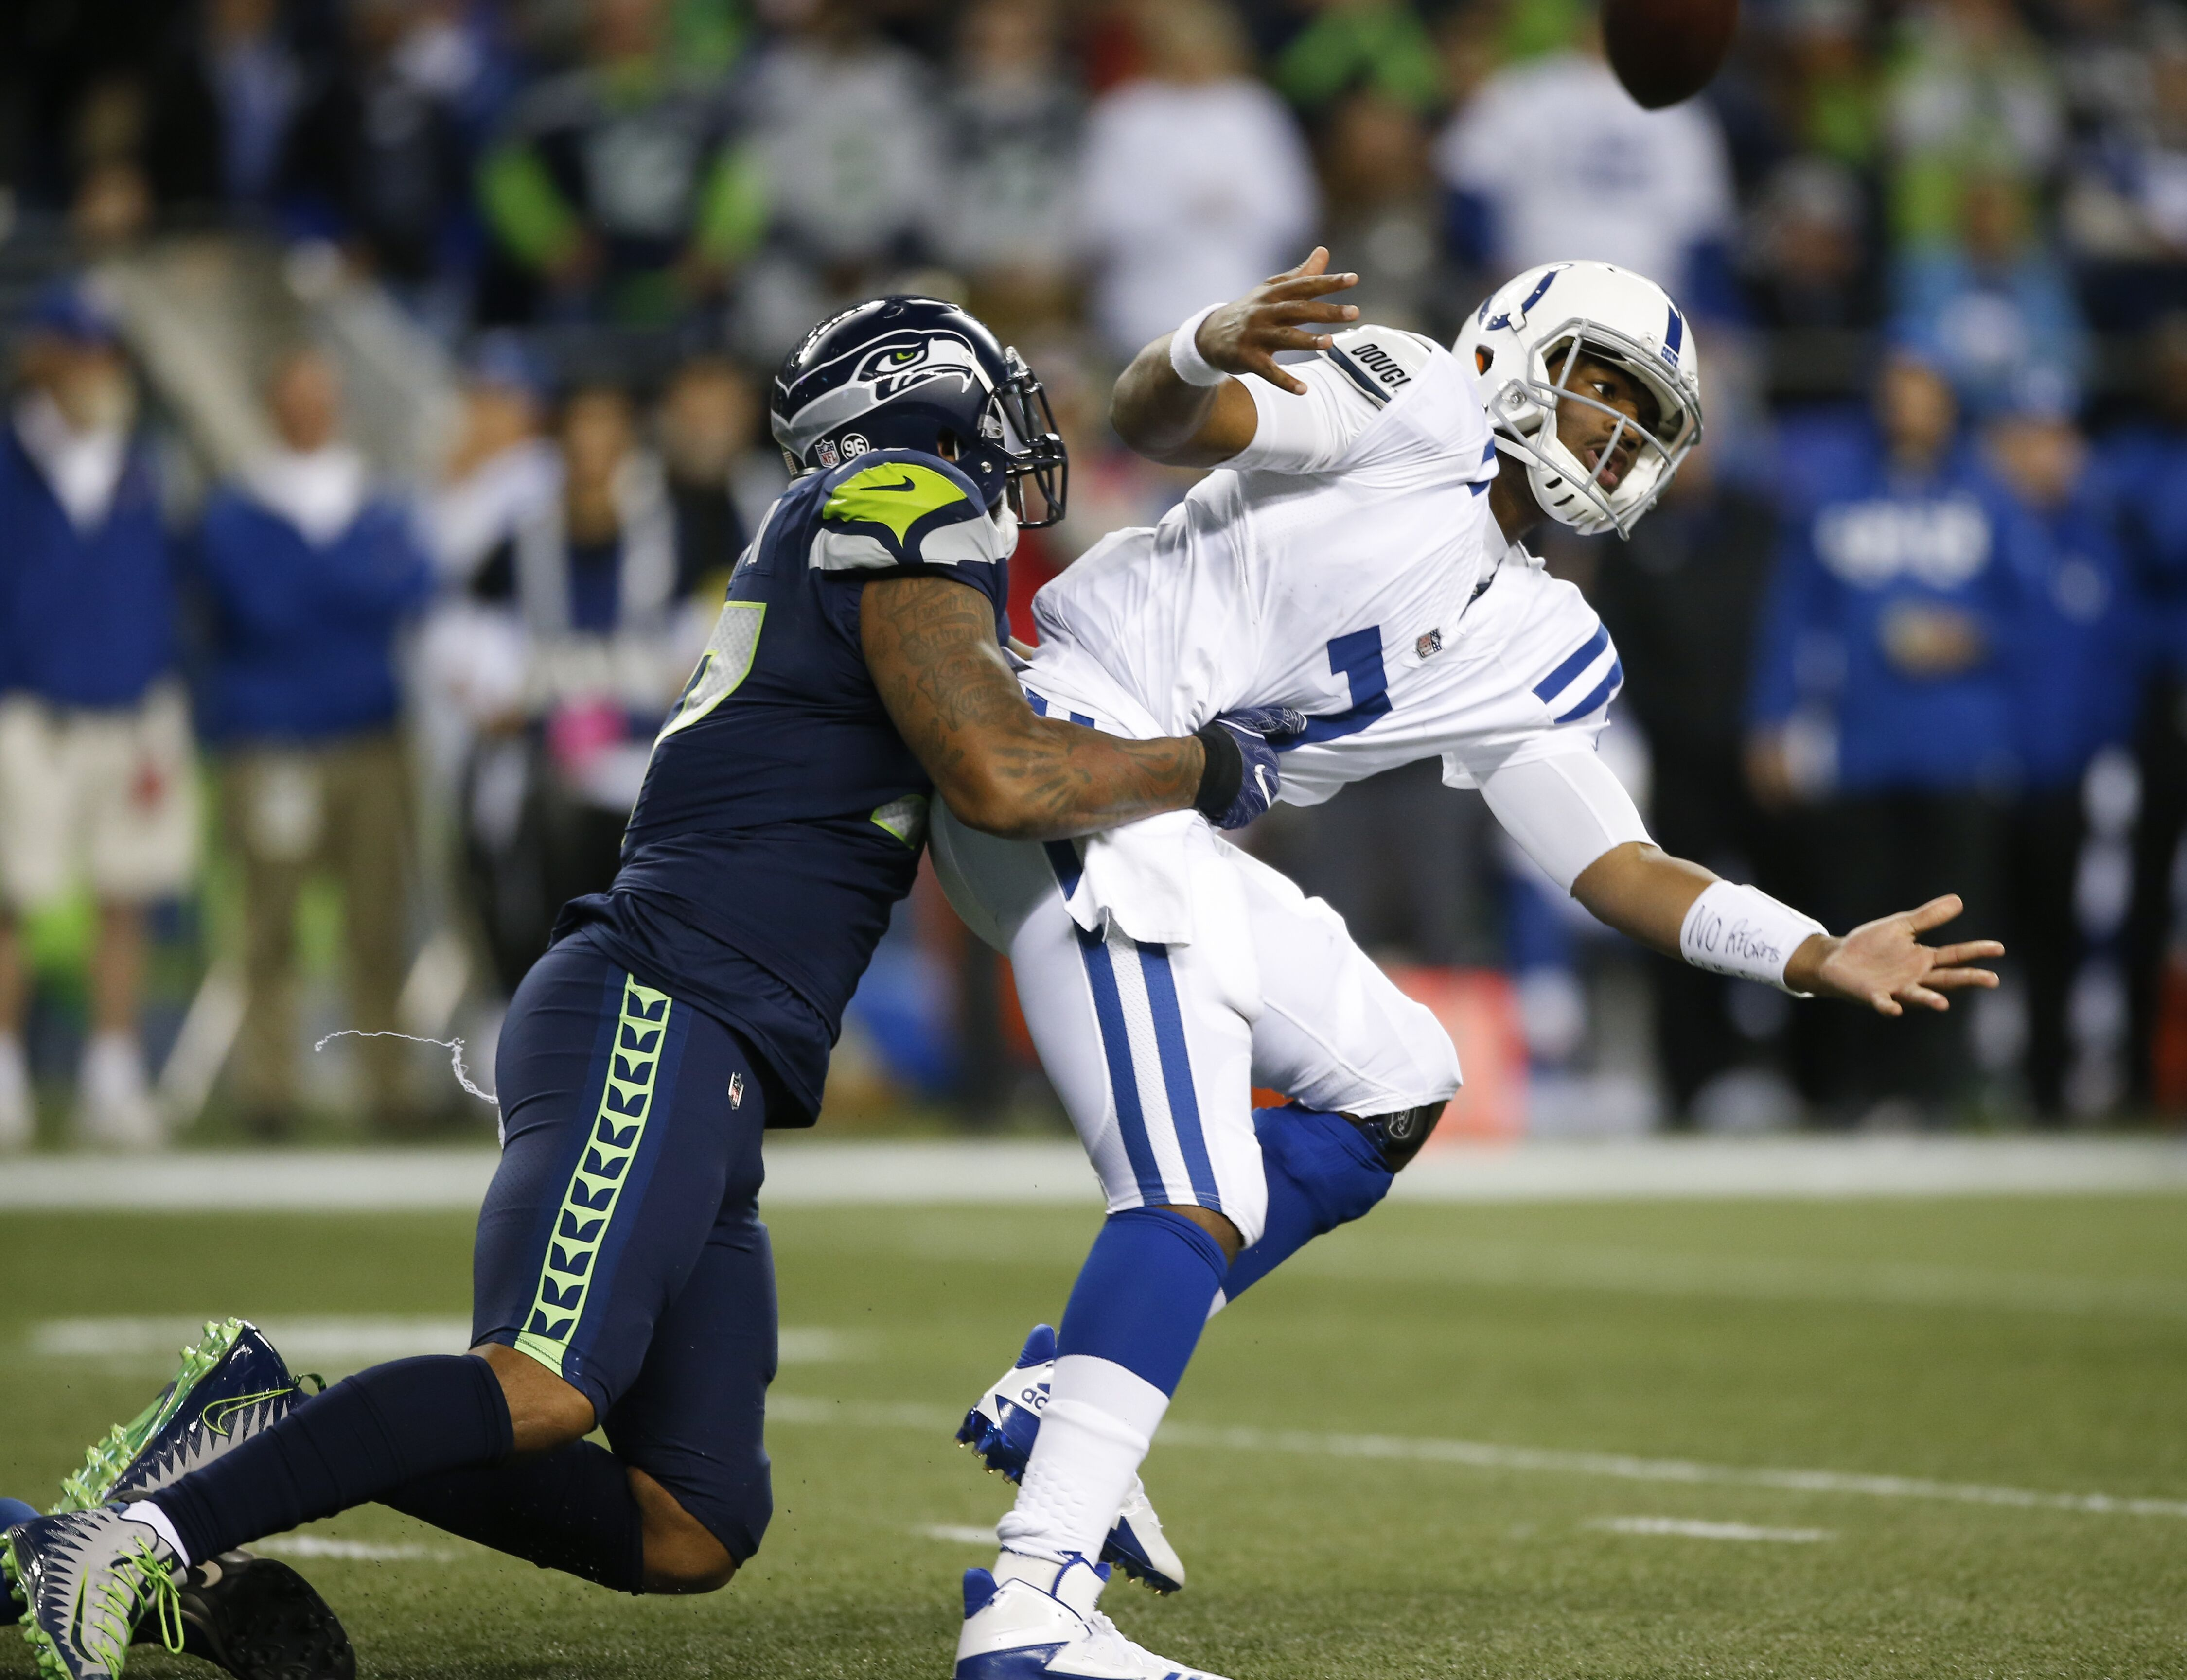 856475444-indianapolis-colts-v-seattle-seahawks.jpg